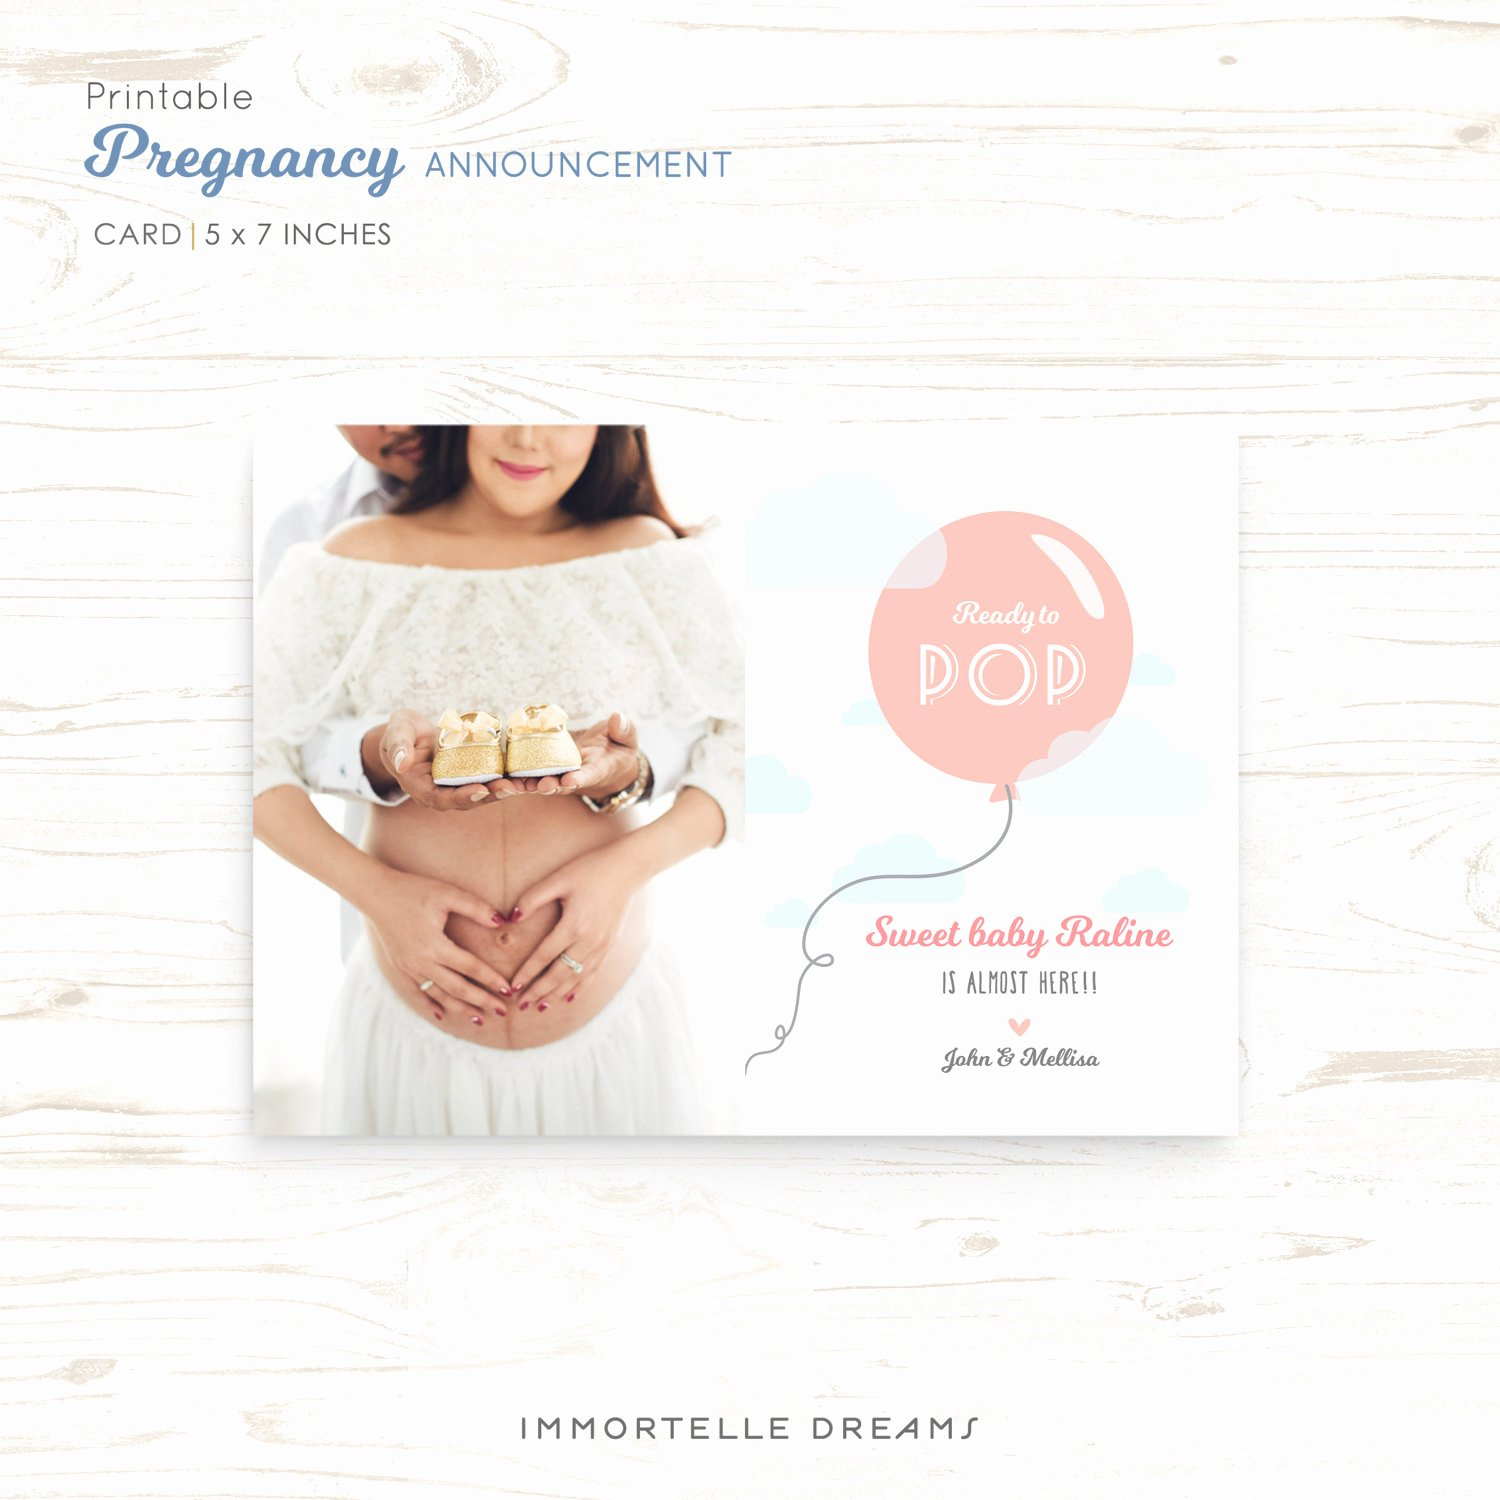 Ready to Pop Template New Pregnancy Announcement Card Ready to Pop Template Card